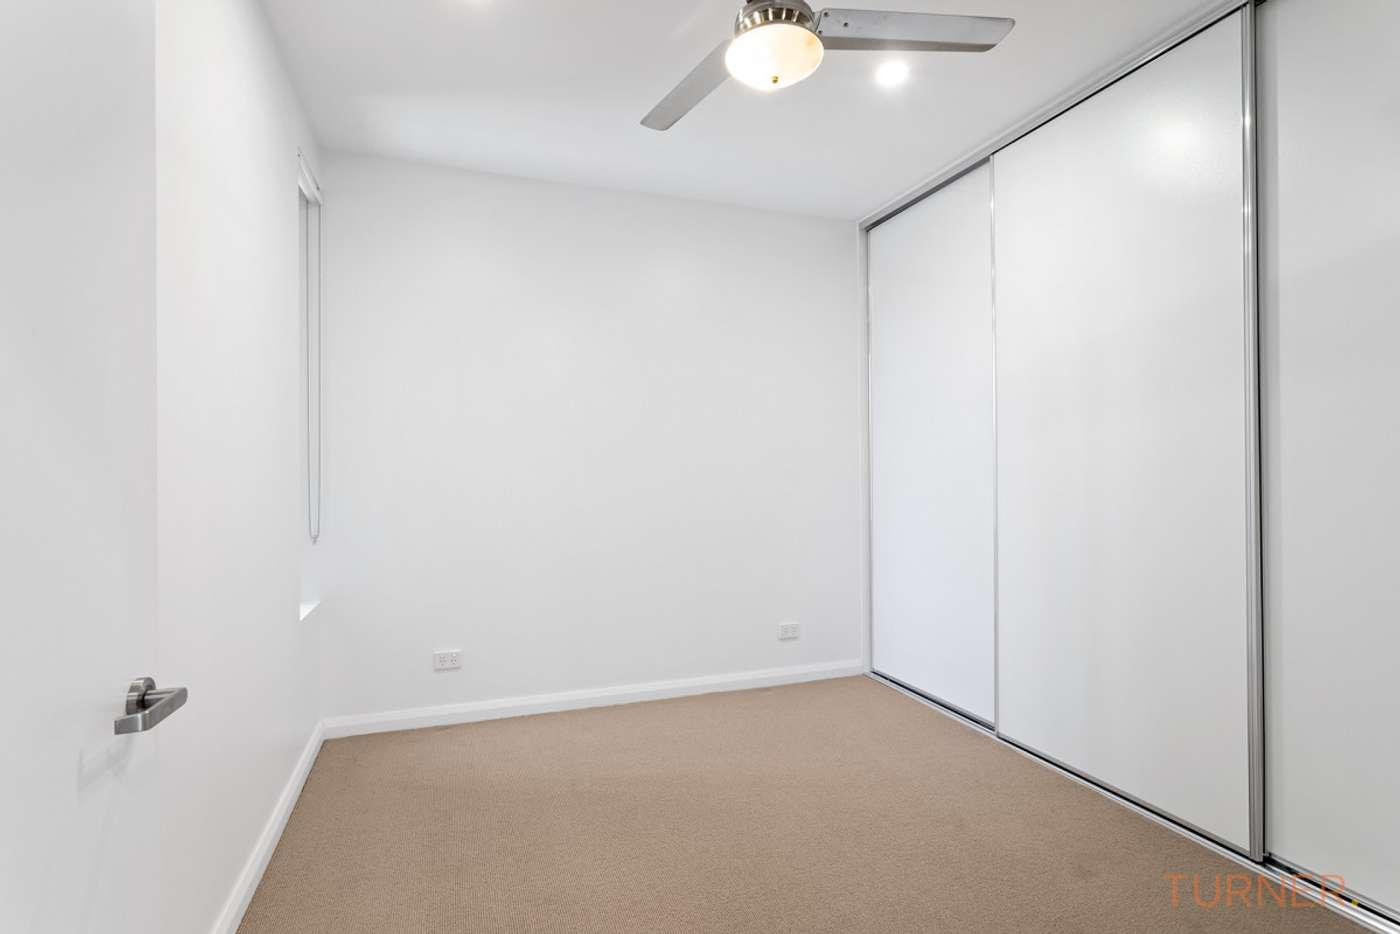 Fifth view of Homely apartment listing, 214/3 Fourth Street, Bowden SA 5007